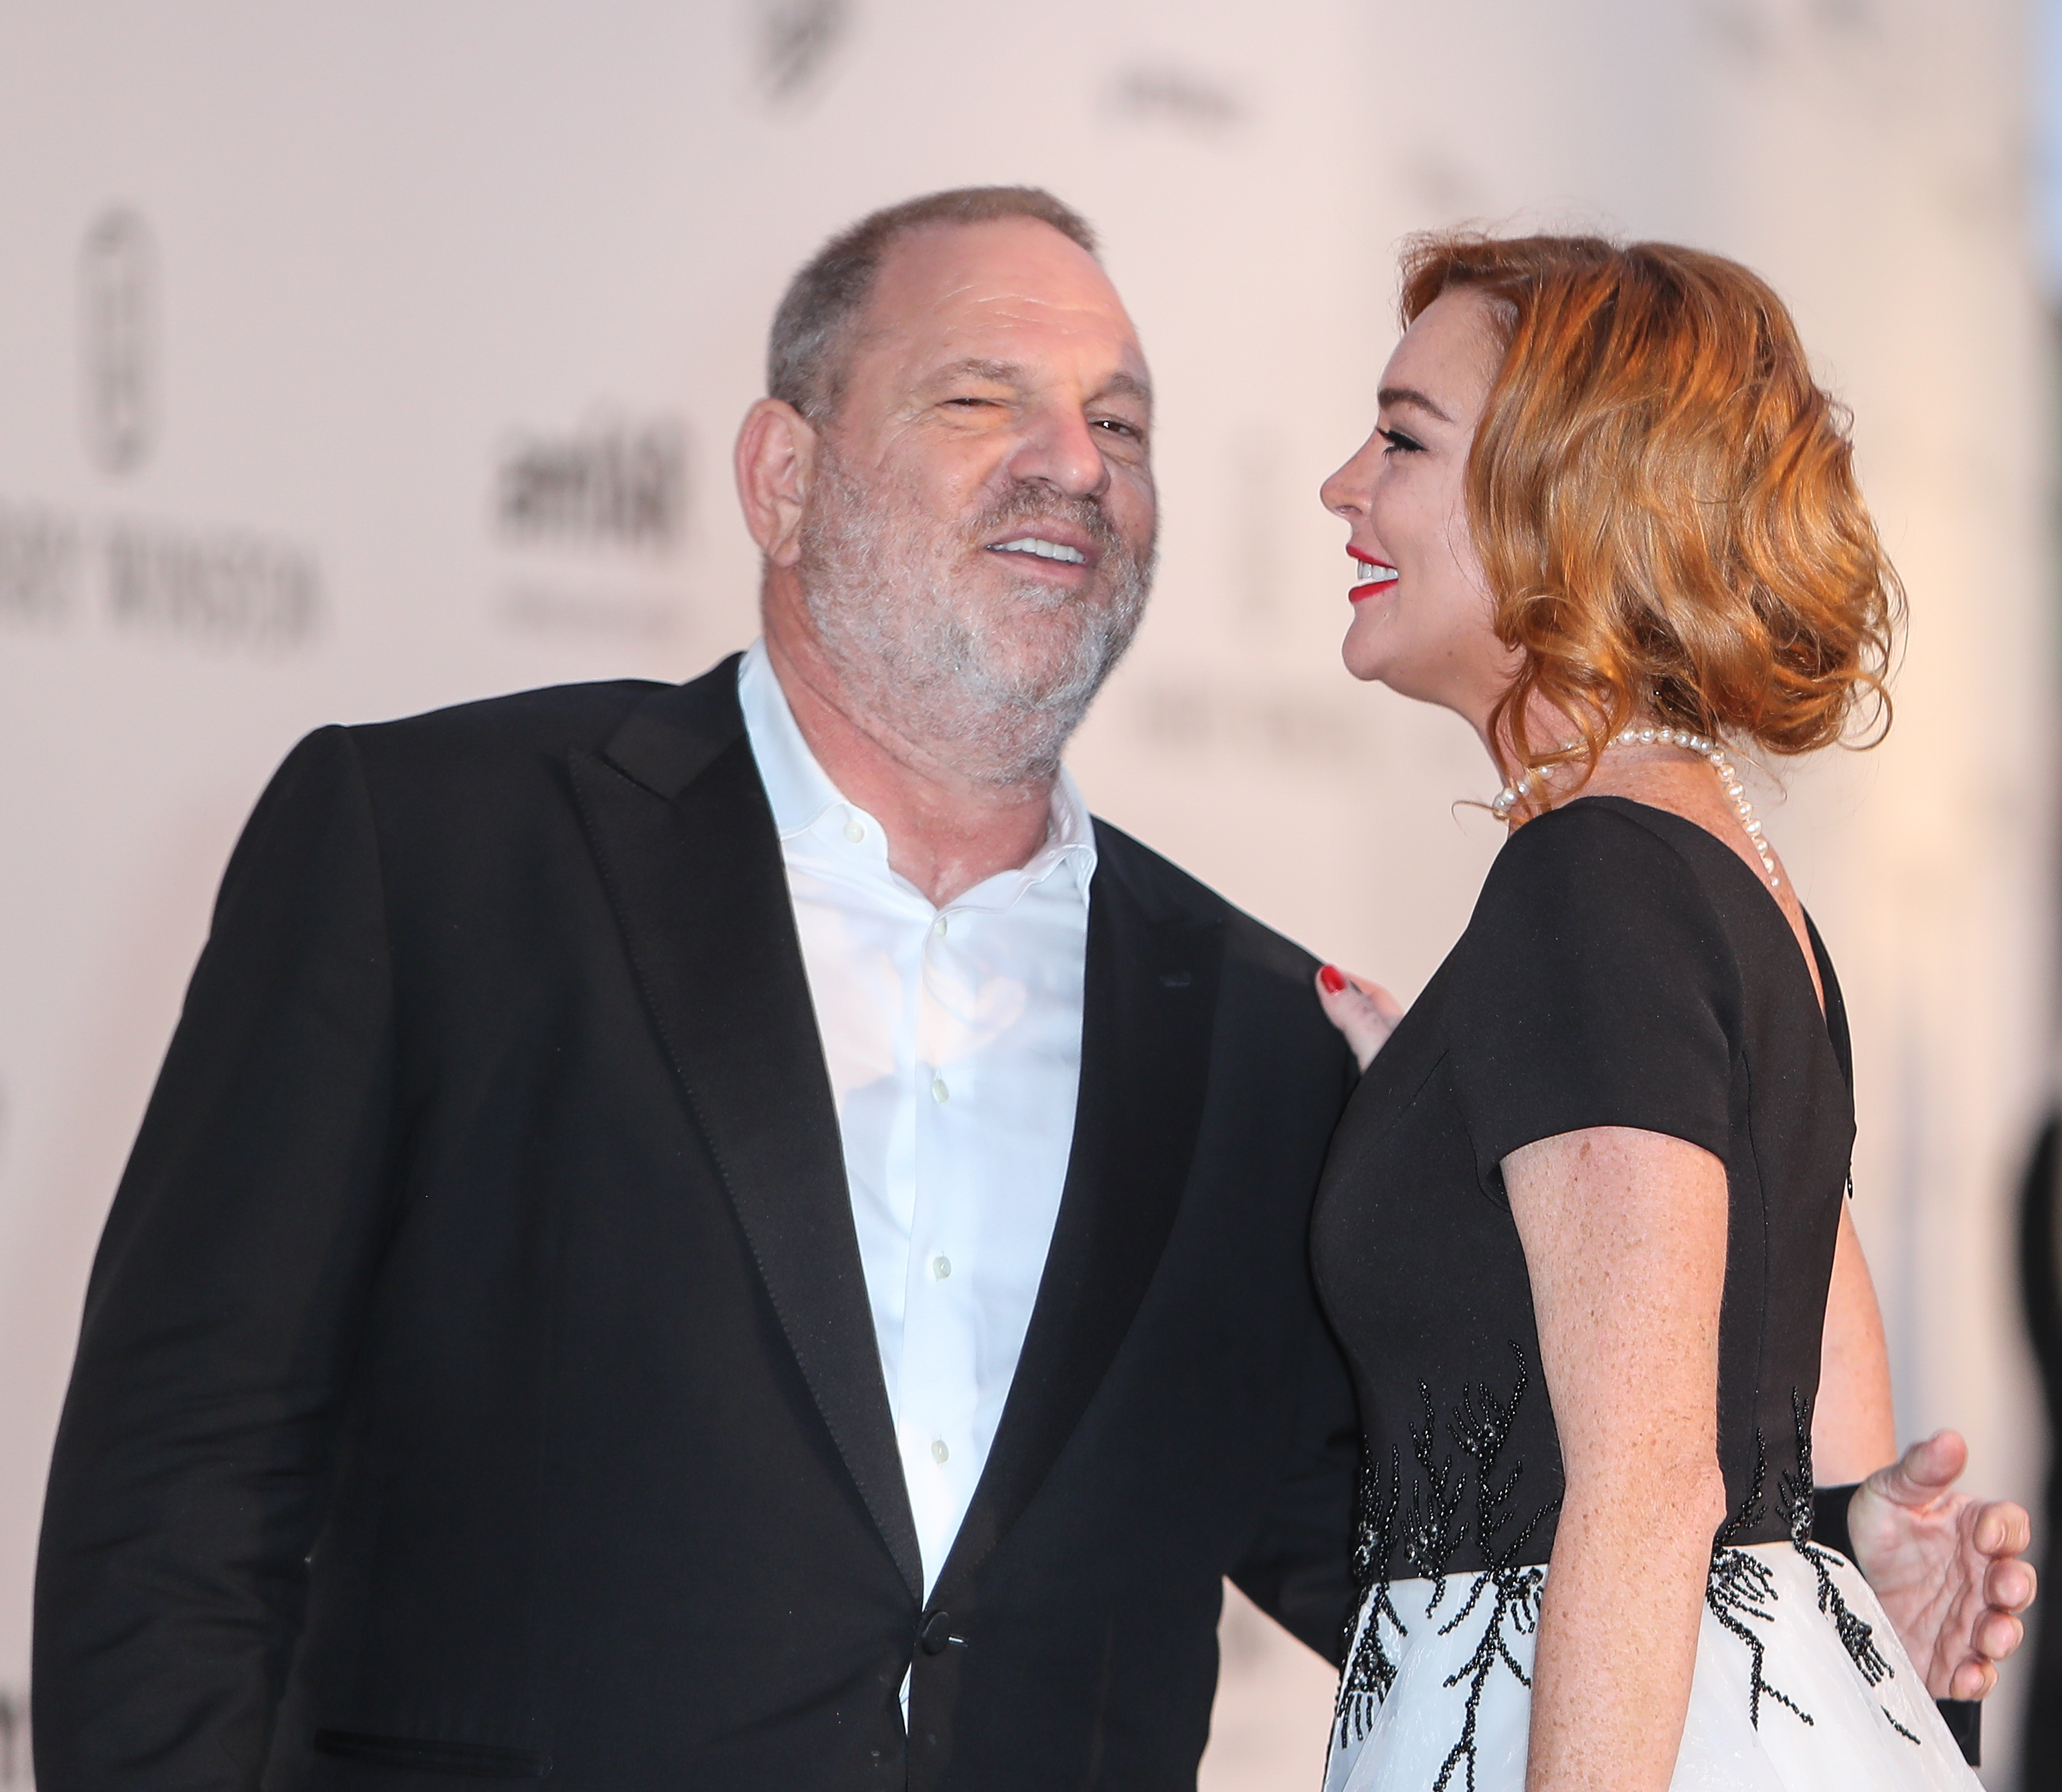 Arrivals for the 24th annual amfAR fundraiser during the Cannes Film Festival at the Hotel Eden Roc in Cap D'Antibes  Featuring: Harvey Weinstein, Lindsey Lohan, Lindsay Lohan Where: Cap D Antibes, United Kingdom When: 25 May 2017 Credit: John Rainford/WENN.com